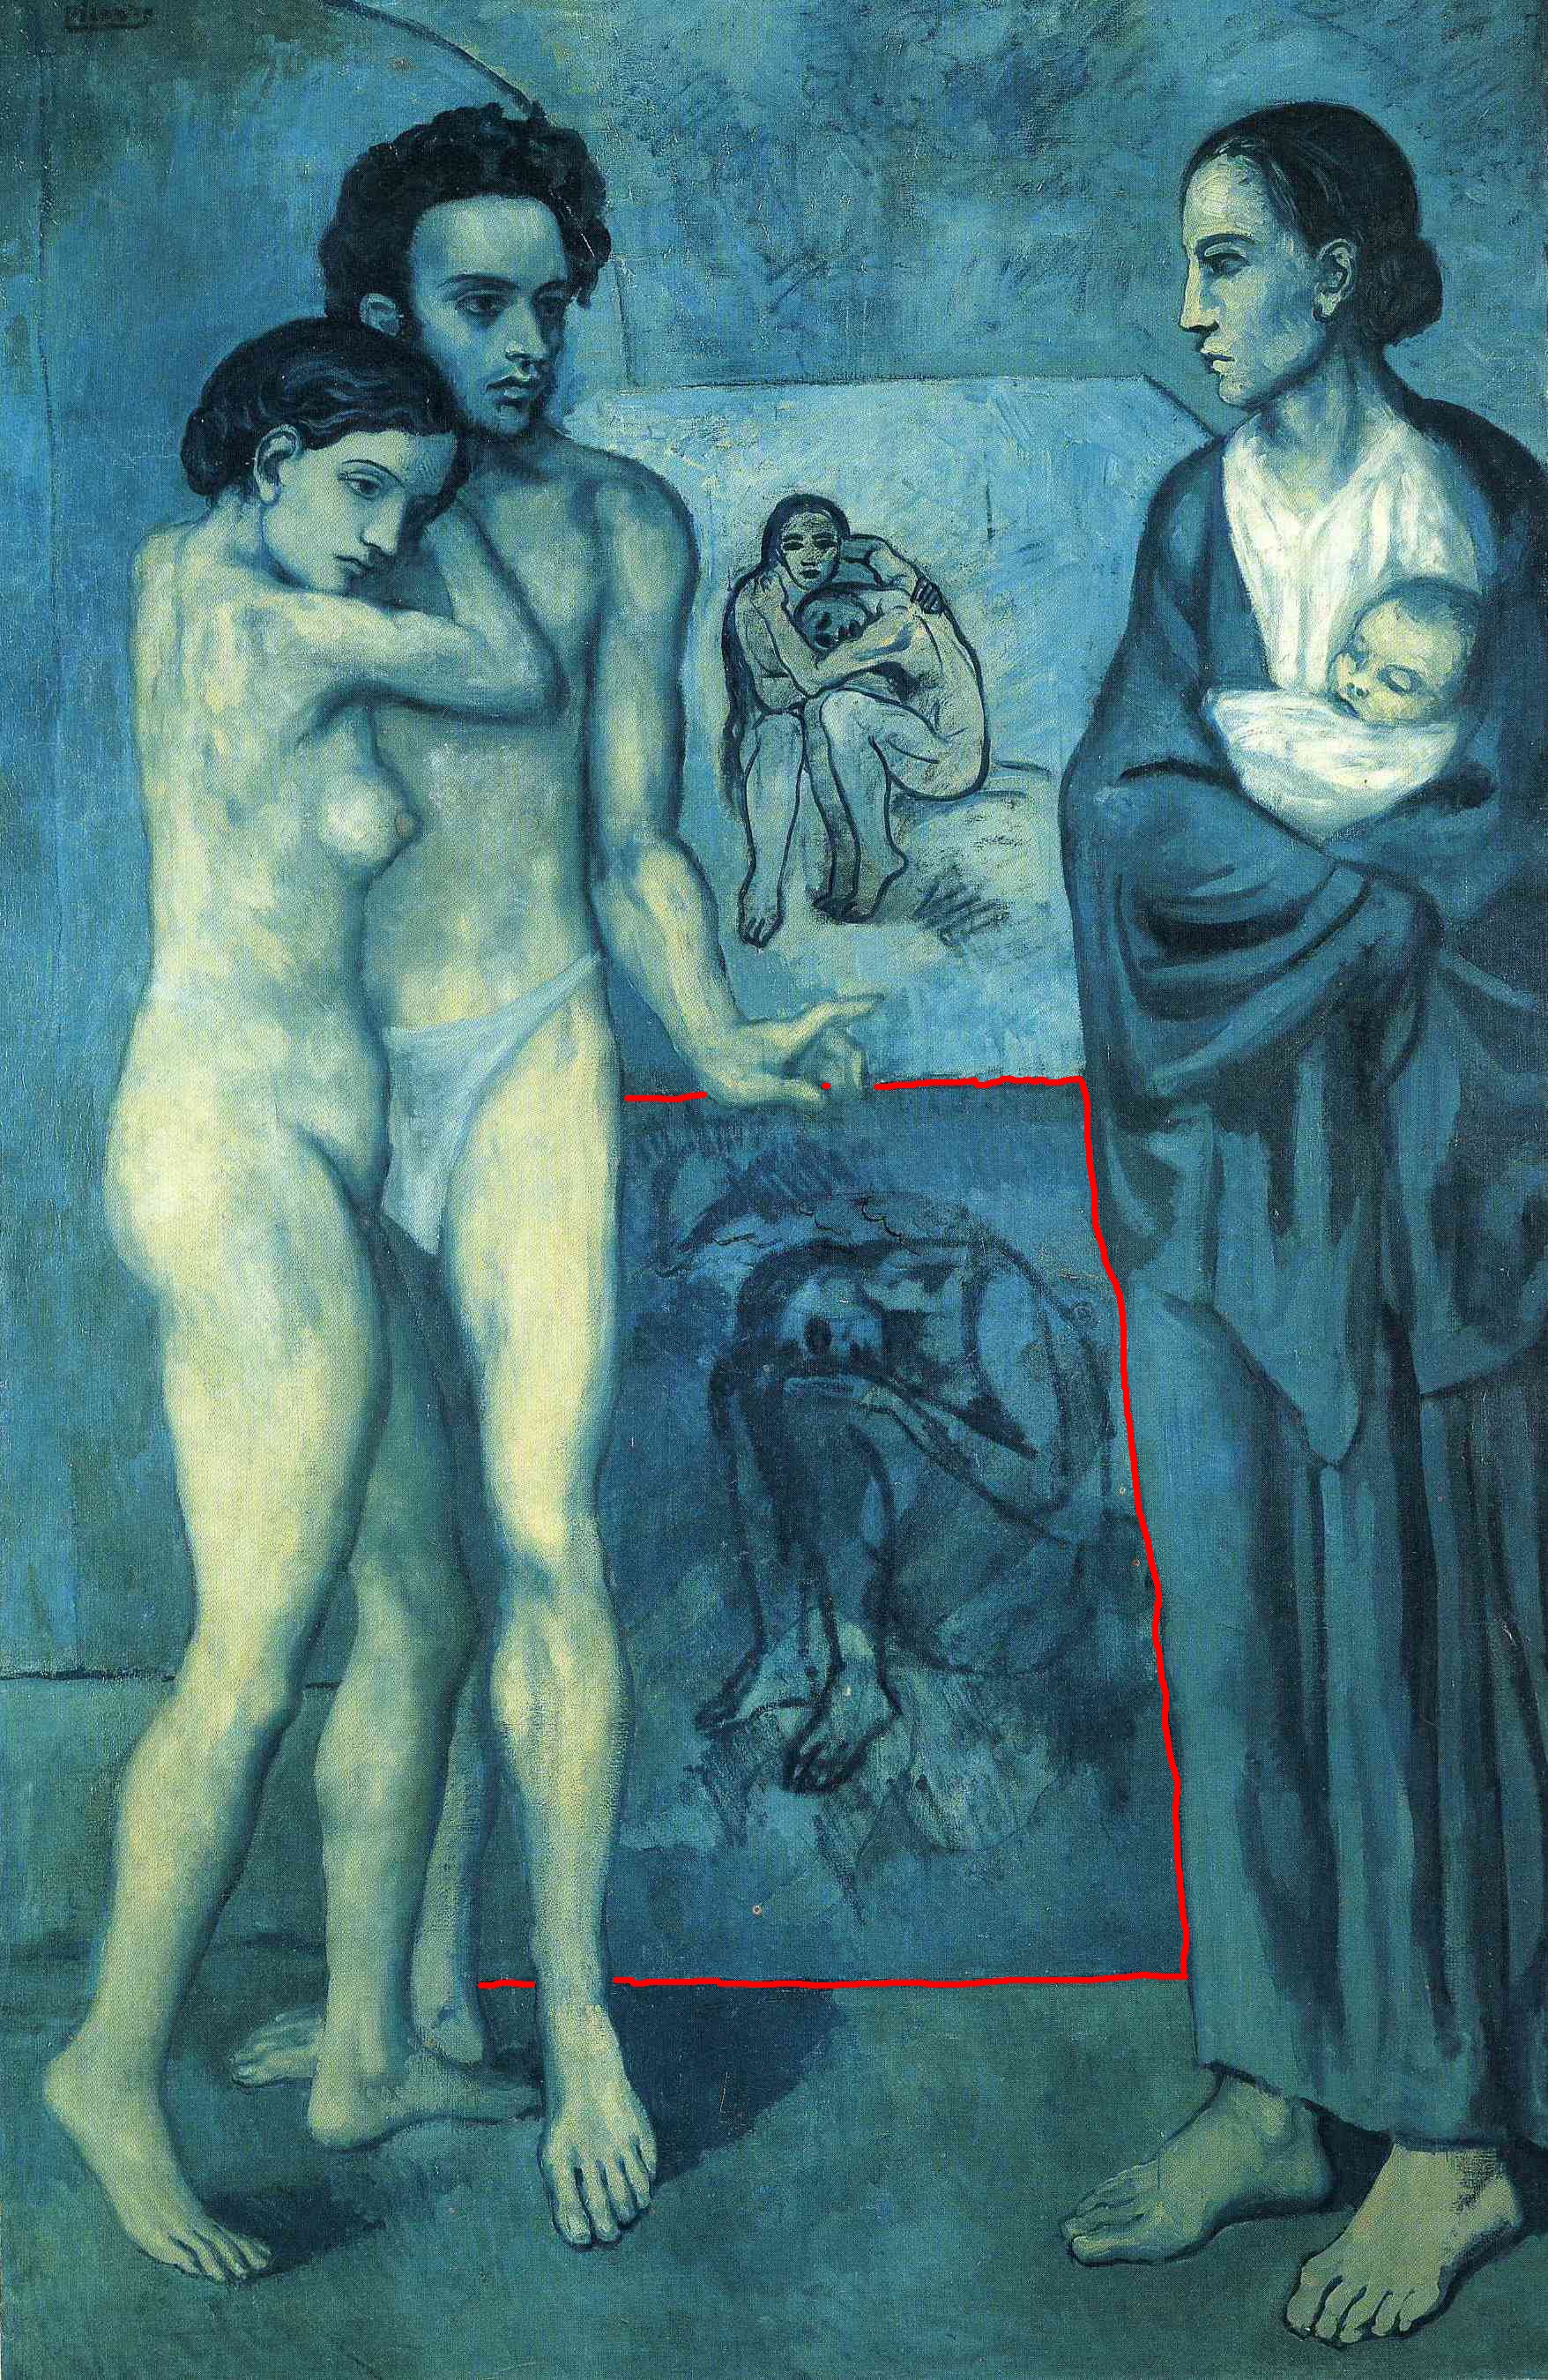 It appears unfinished in the background of Picasso's La Vie.